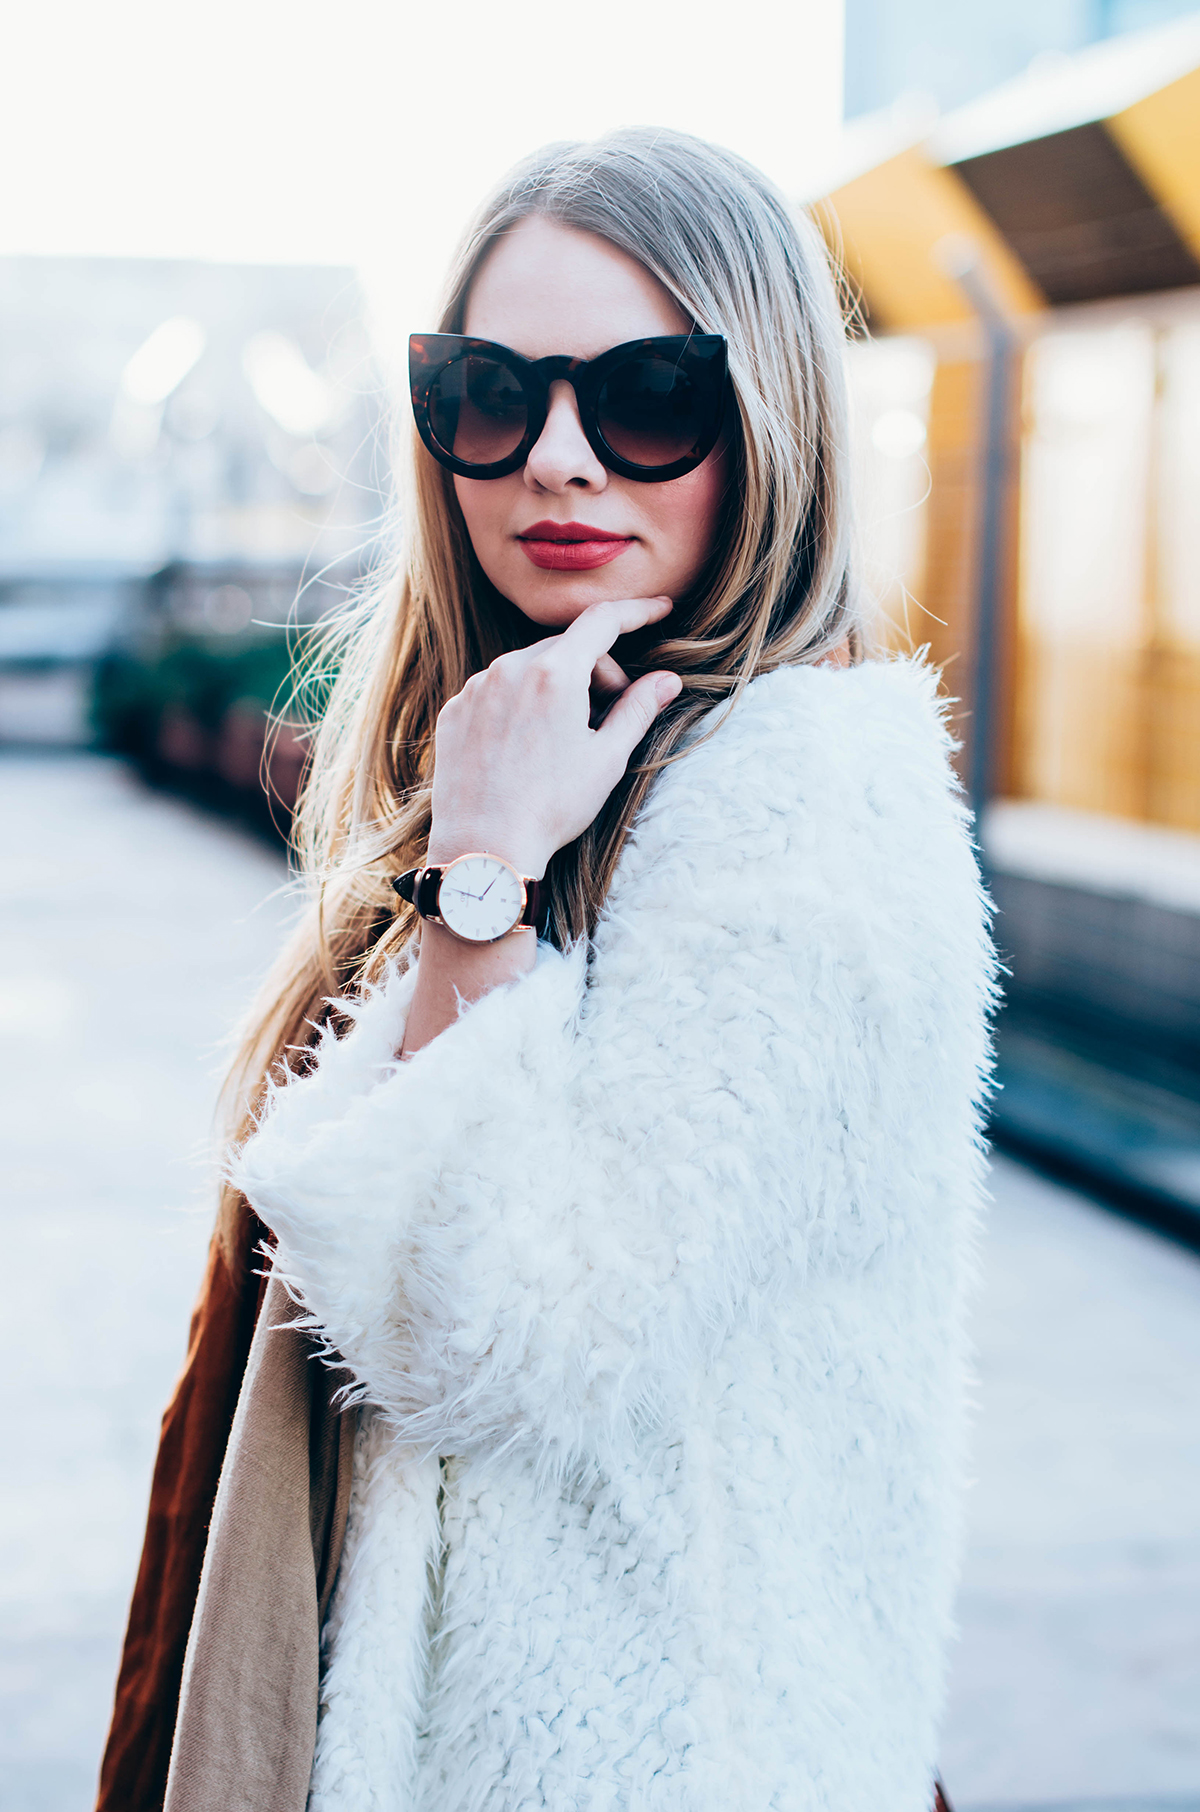 white-fluffy-cardgan-ripped-skinny-jeans-suede-boots-camel-scarf-fluffy-keyrng-cat-eye-sunglasses (4)